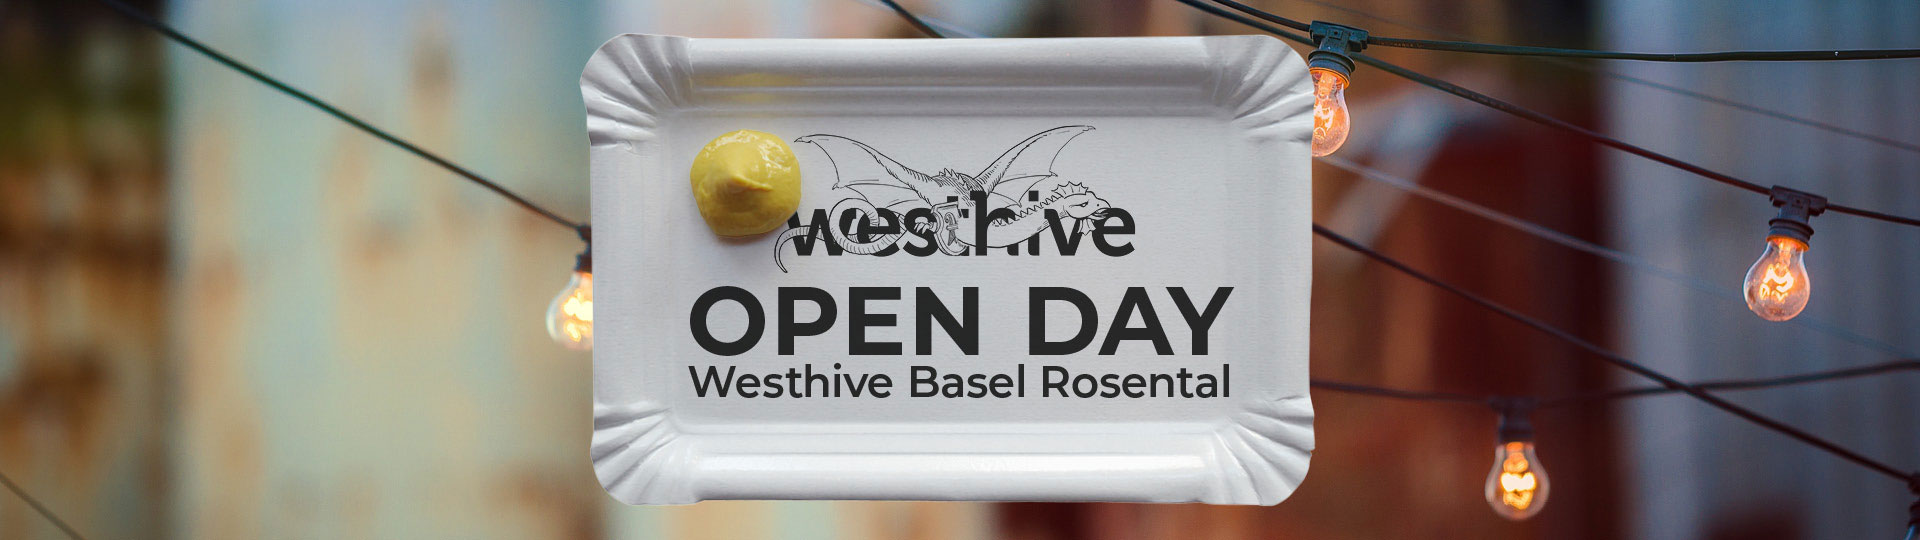 Invitation card for open day at Westhive Basel Rosental